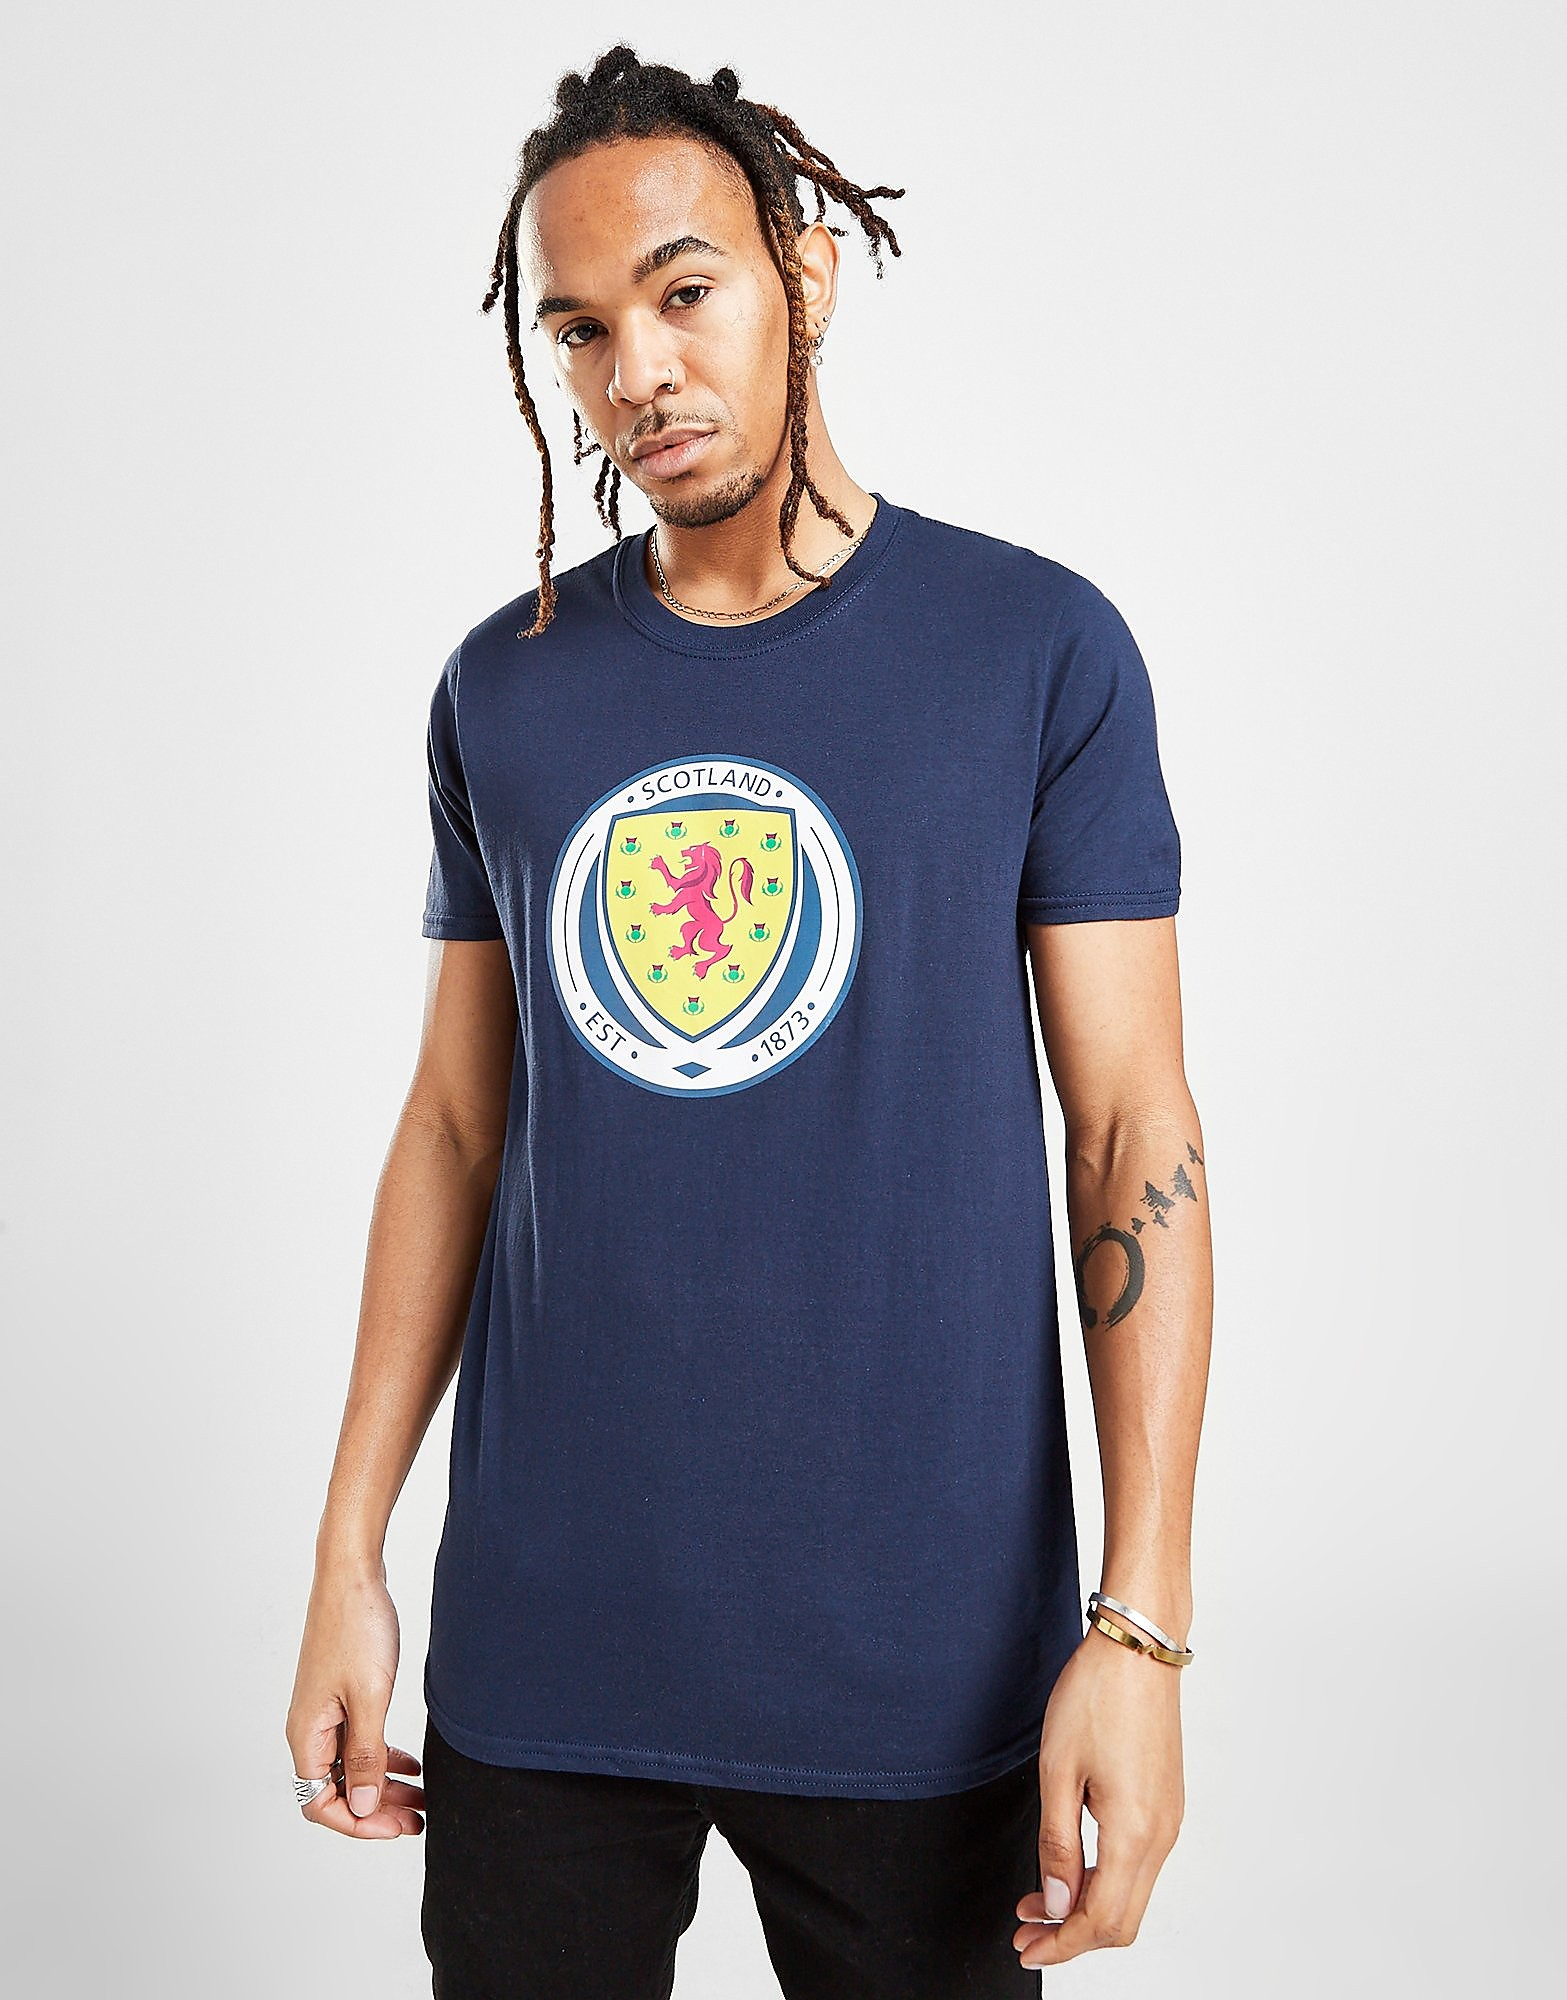 Official Team Scotland FA Crest T-Shirt